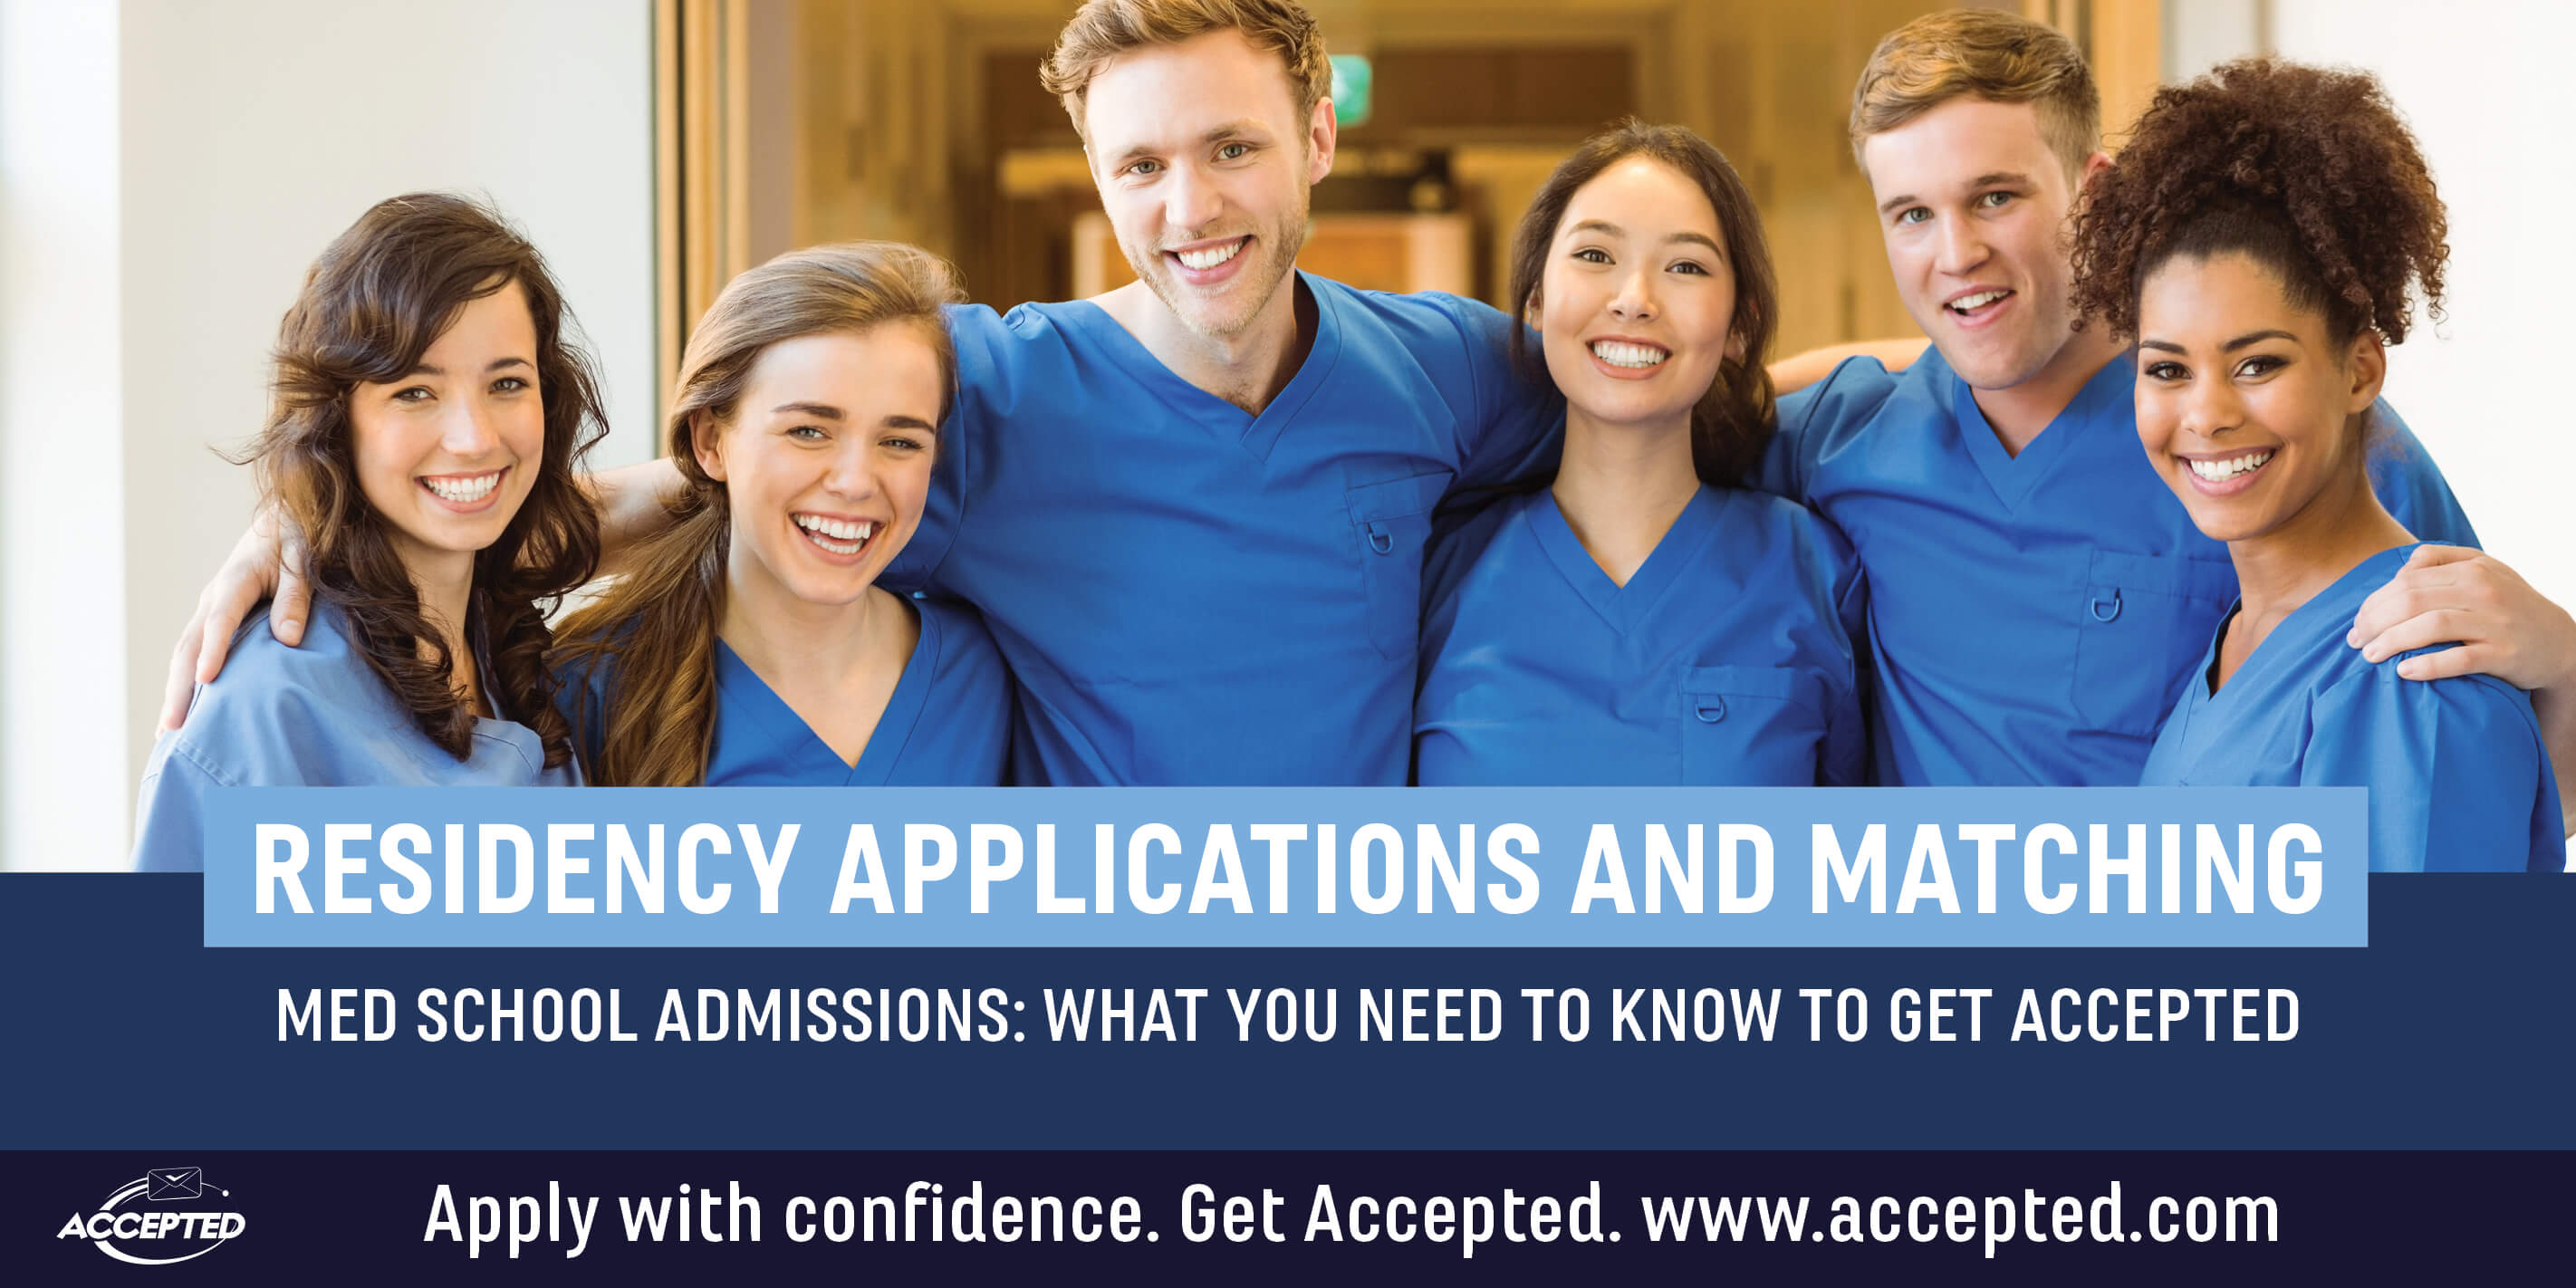 Residency Applications & Matching: What You Need to Know